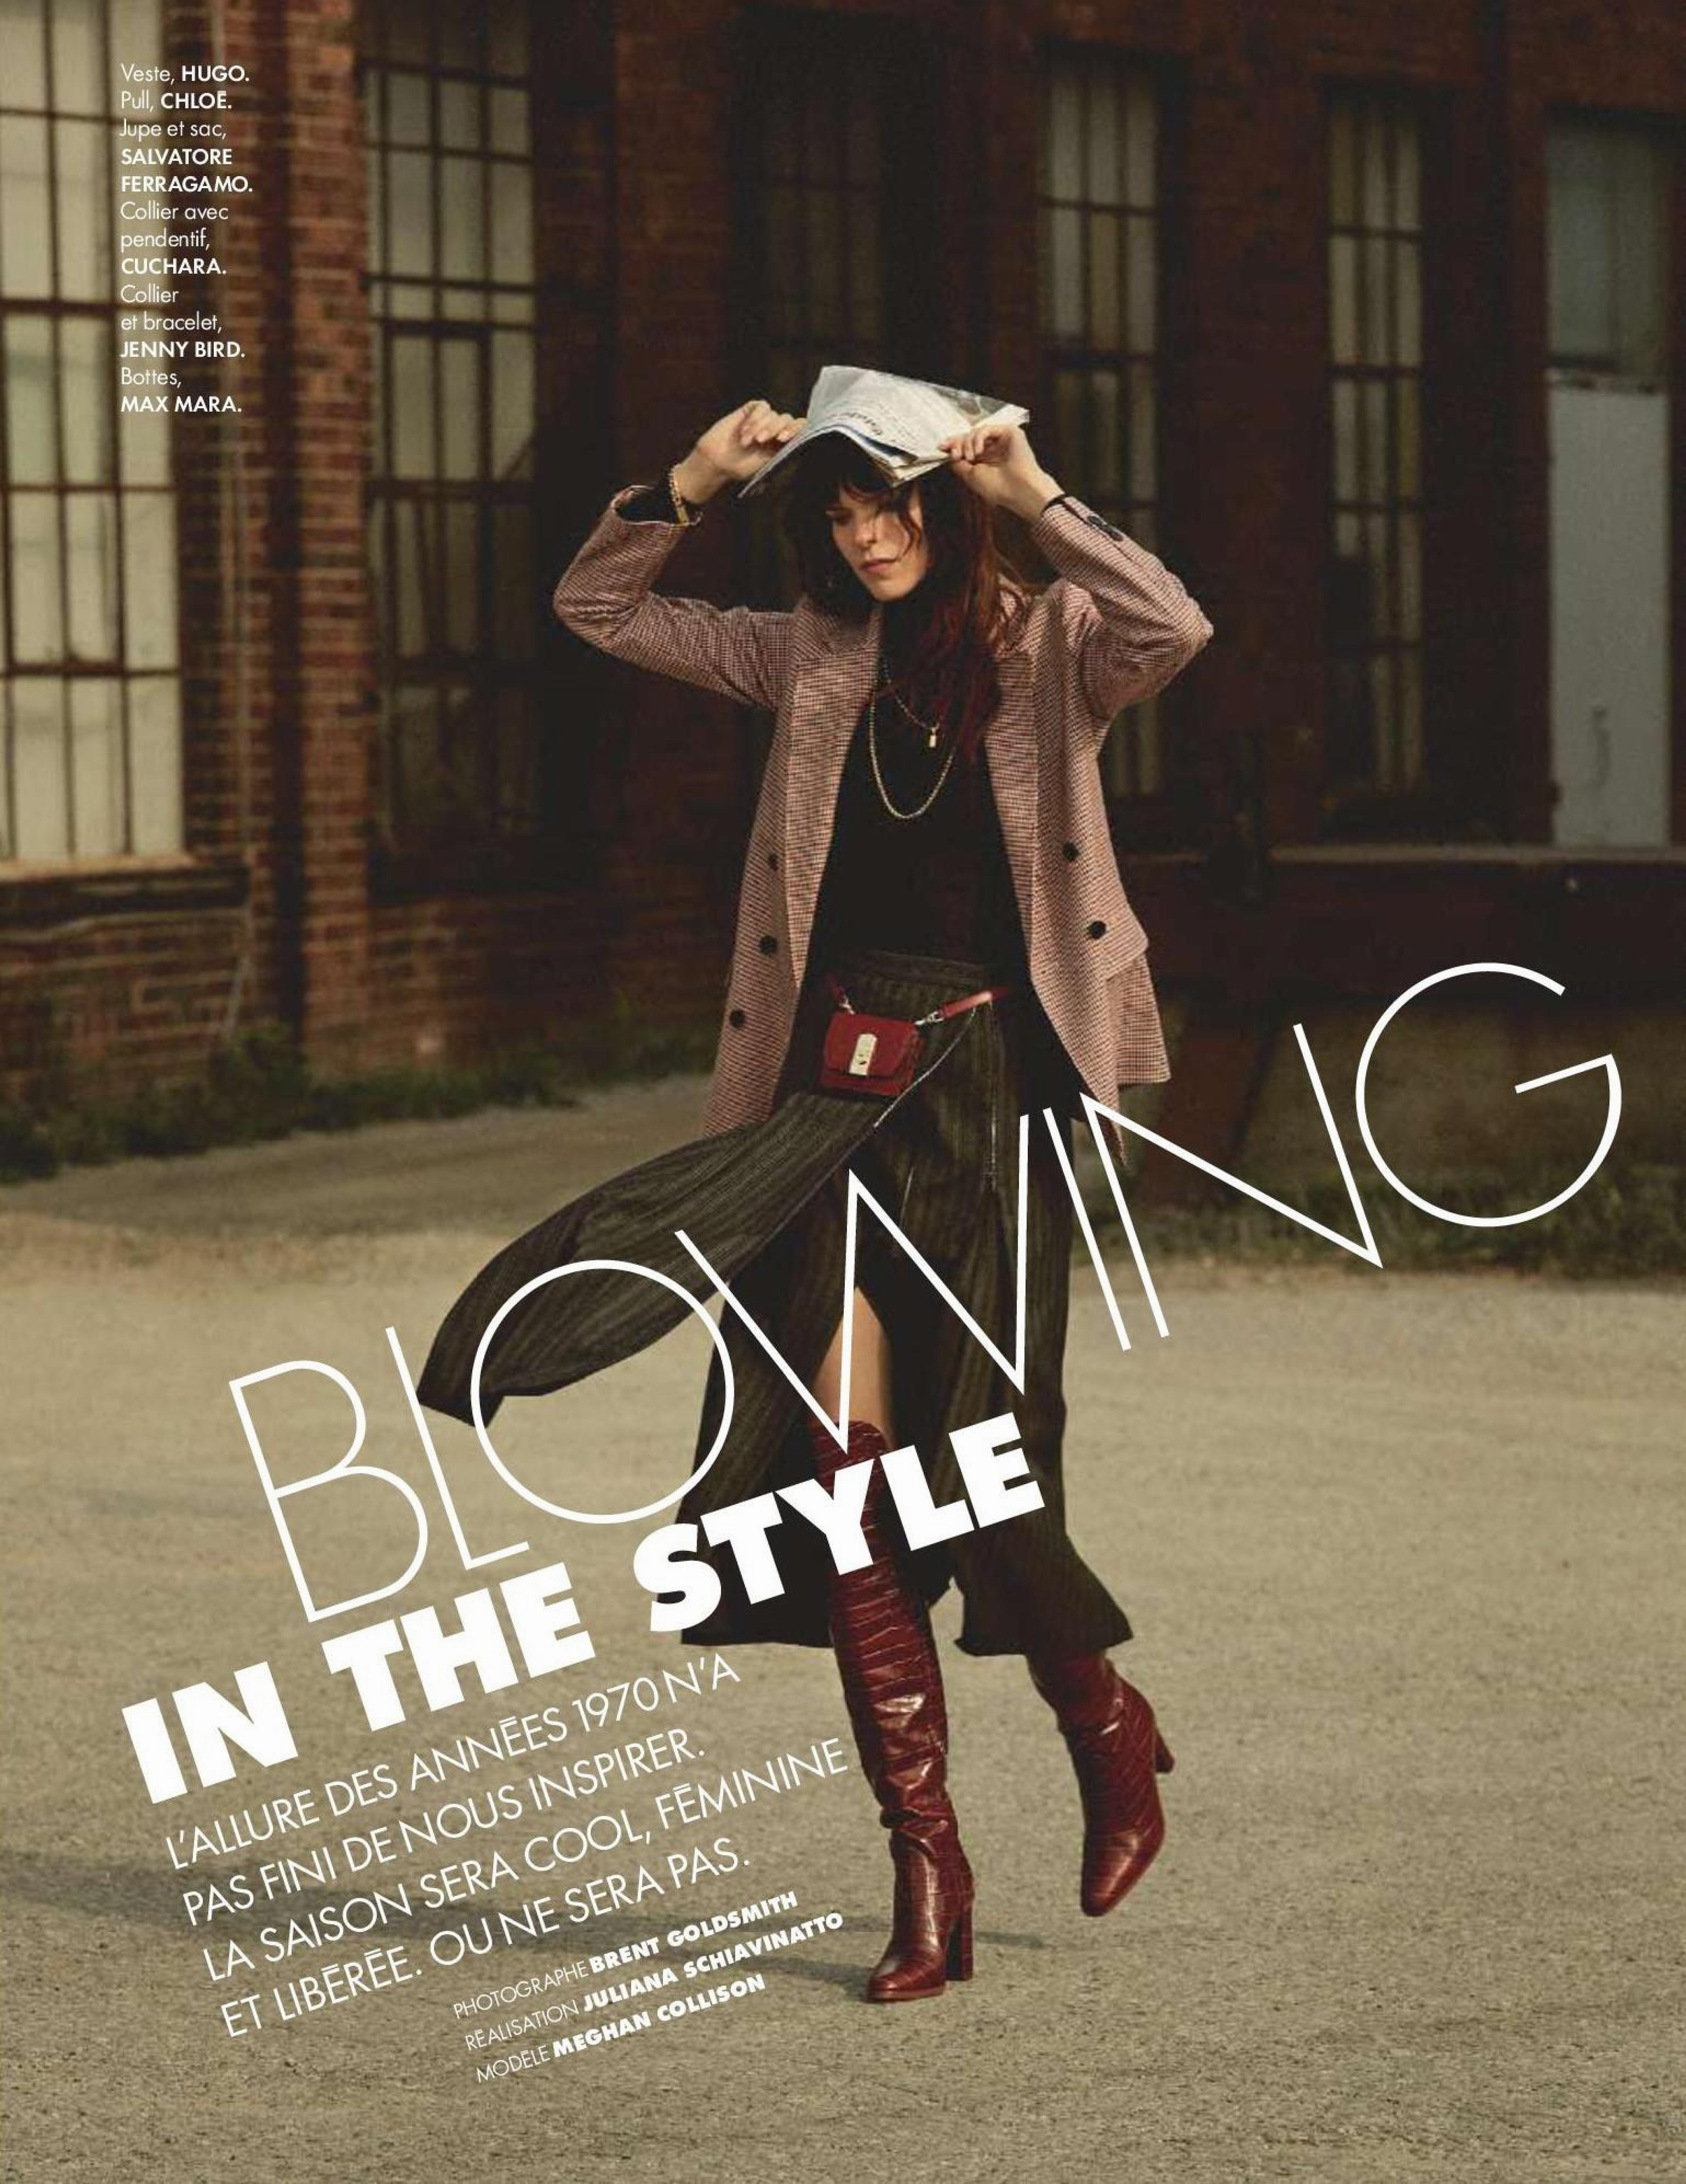 BLOWING IN THE STYLE-69531-mydailystyle